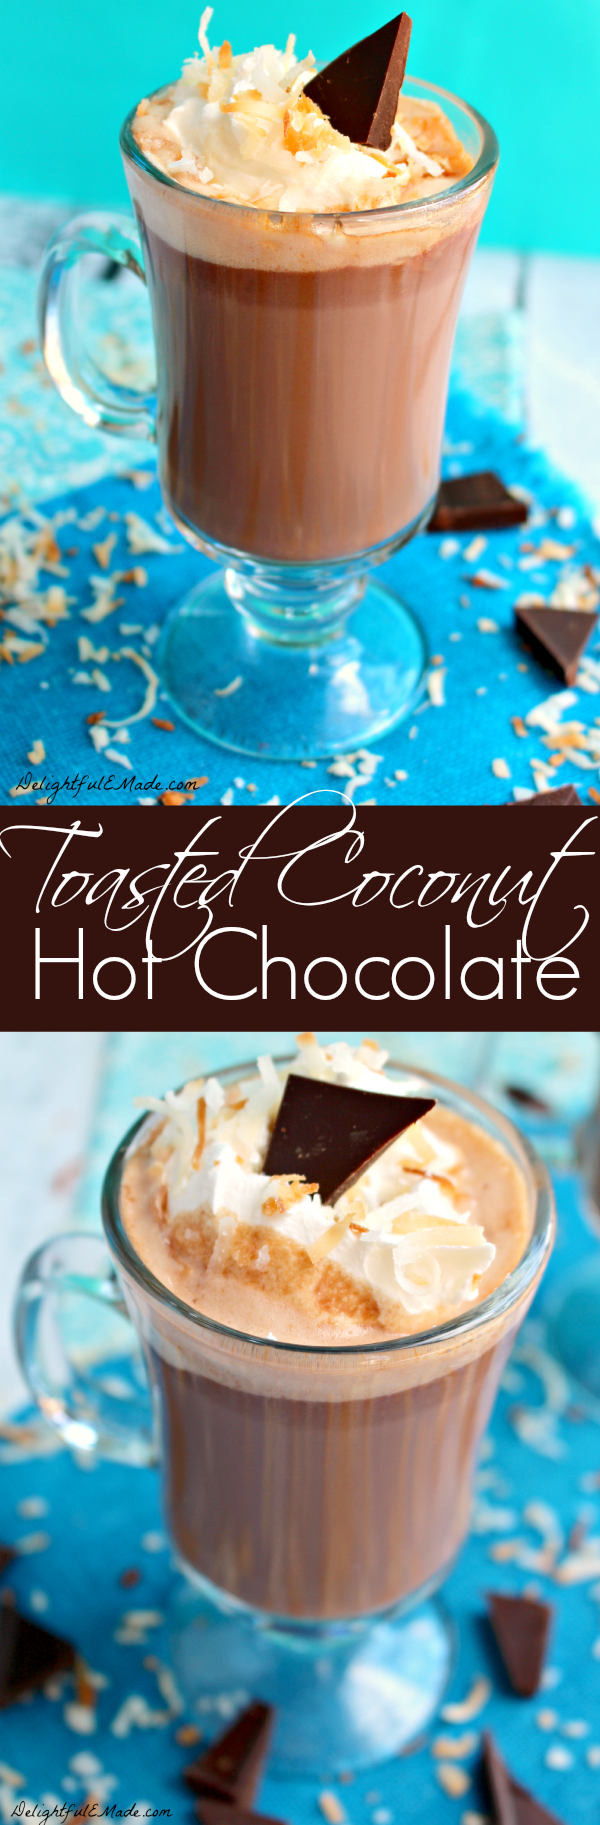 If you like coconut, you'll love this classic hot chocolate! Rich, chocolaty and completely delicious!